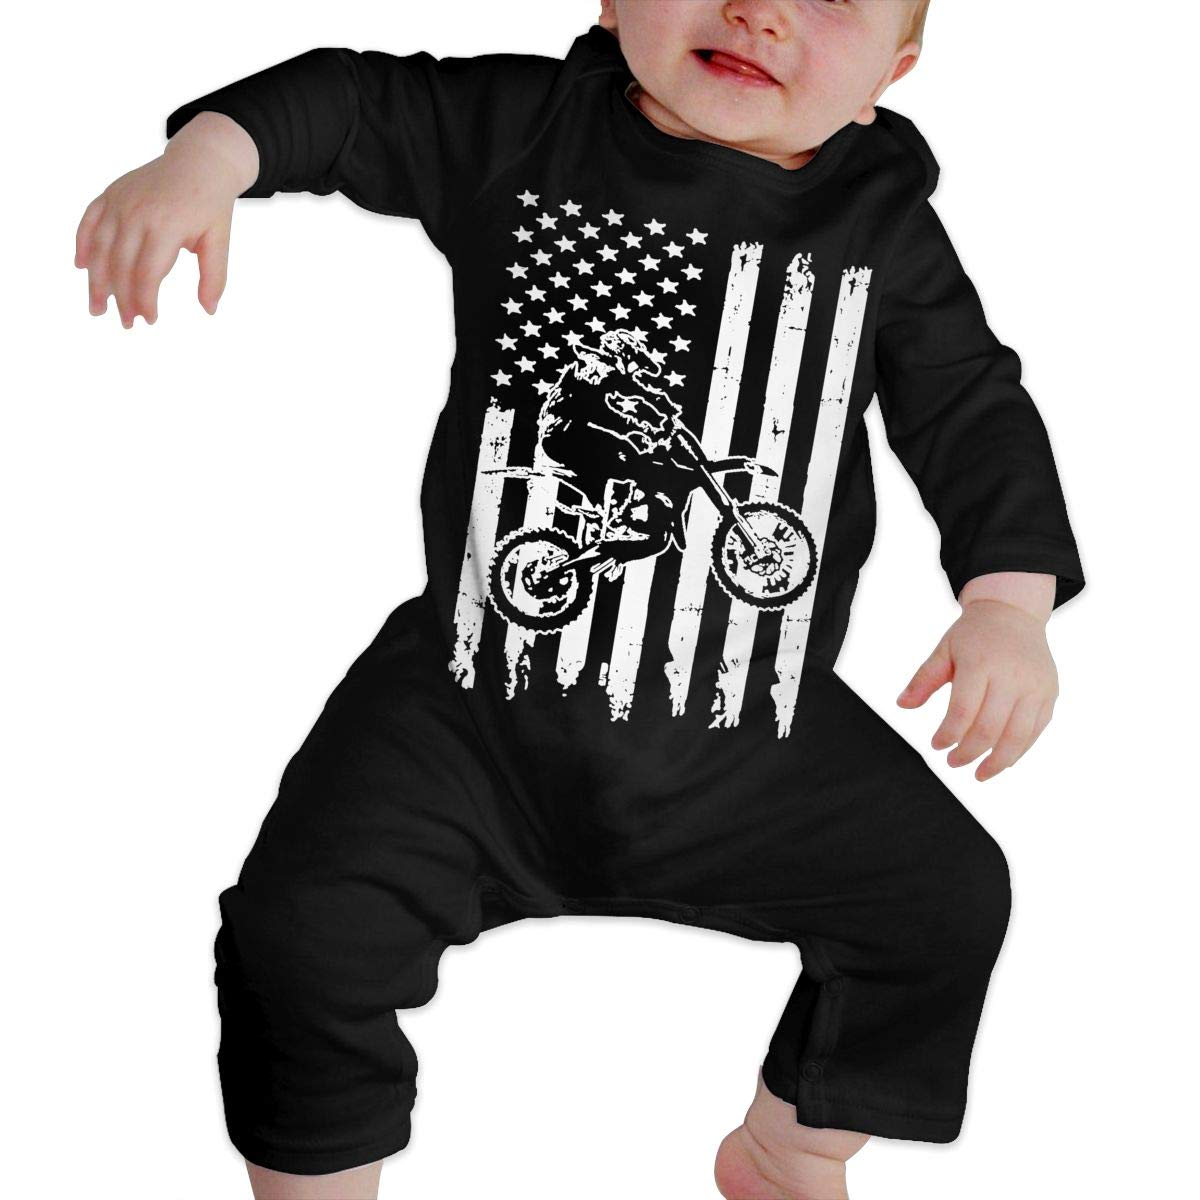 Fasenix Motocross Dirt Bike Newborn Baby Boy Girl Romper Jumpsuit Long Sleeve Bodysuit Overalls Outfits Clothes